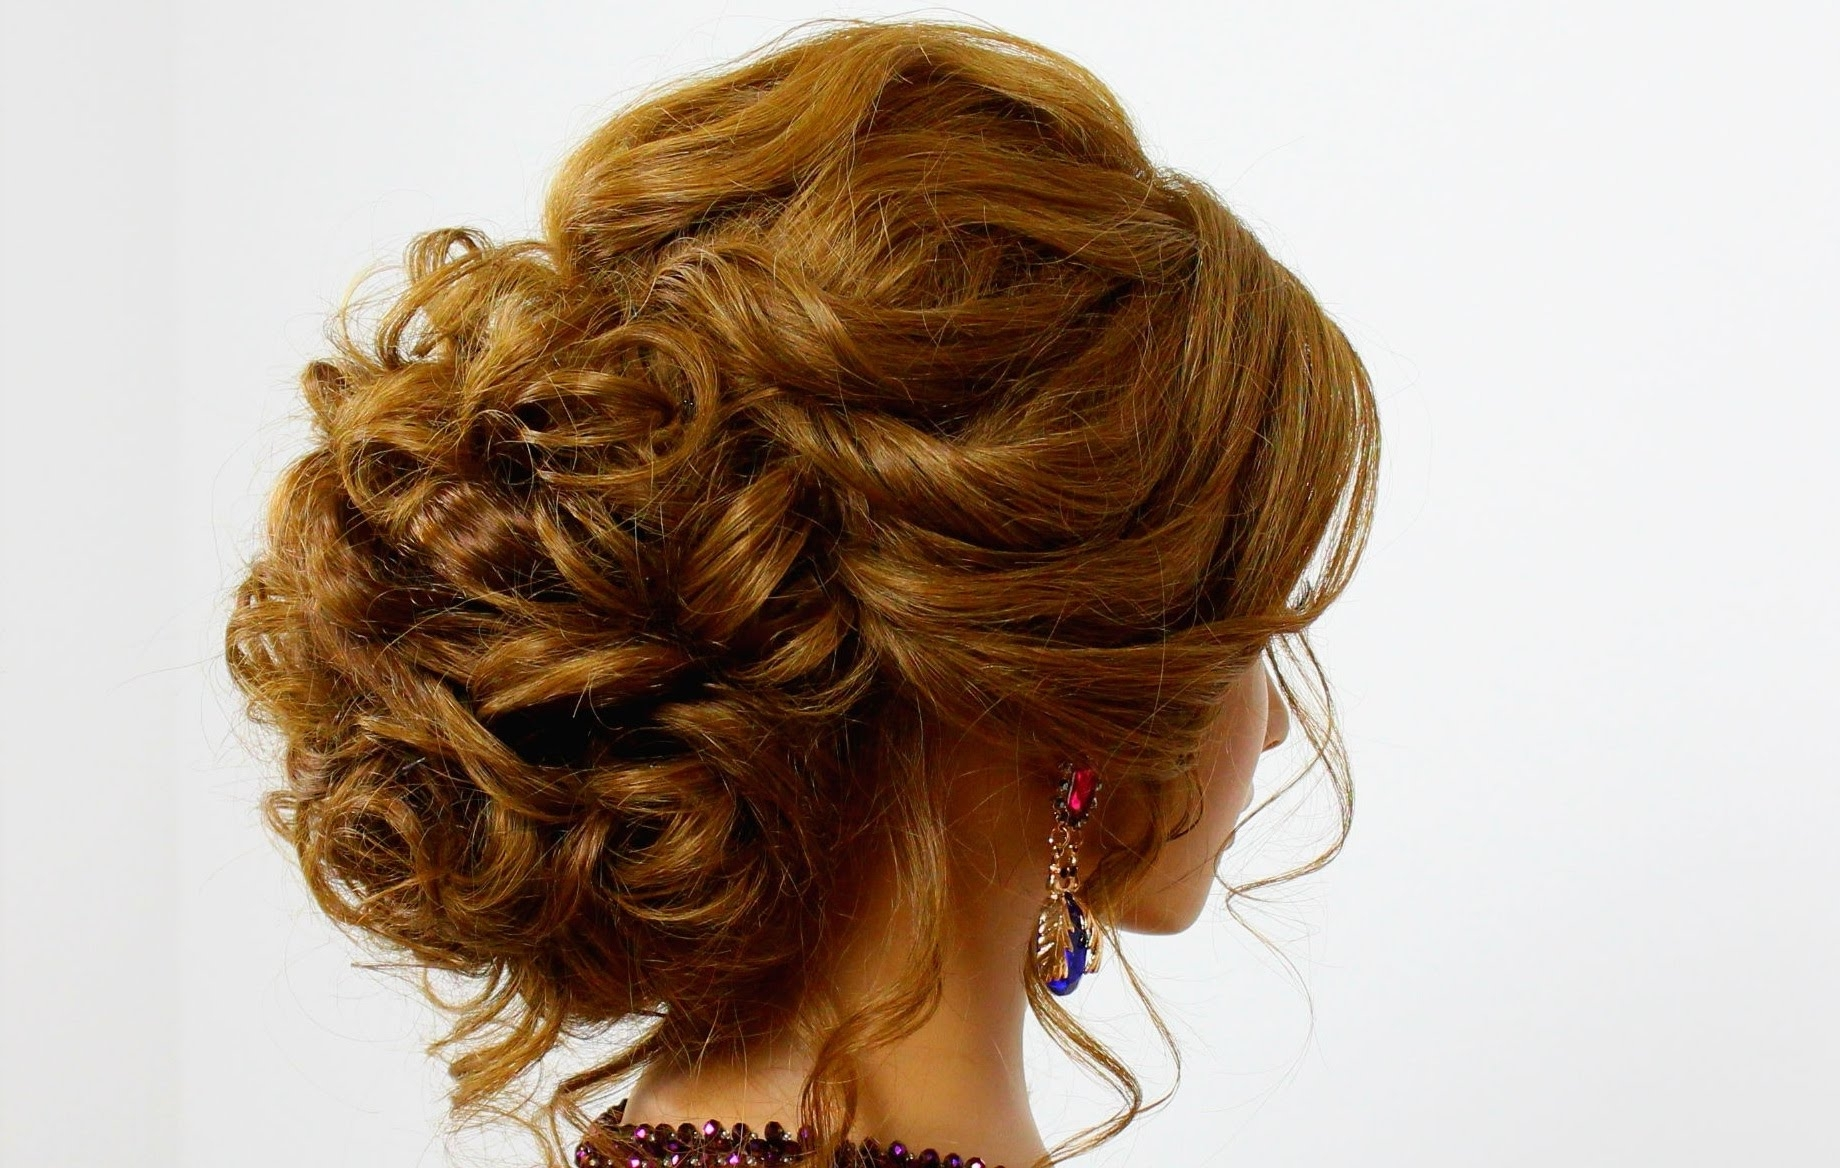 Popular Updo Wedding Hairstyles For Long Hair In Hairstyle For Long Hair (View 10 of 15)